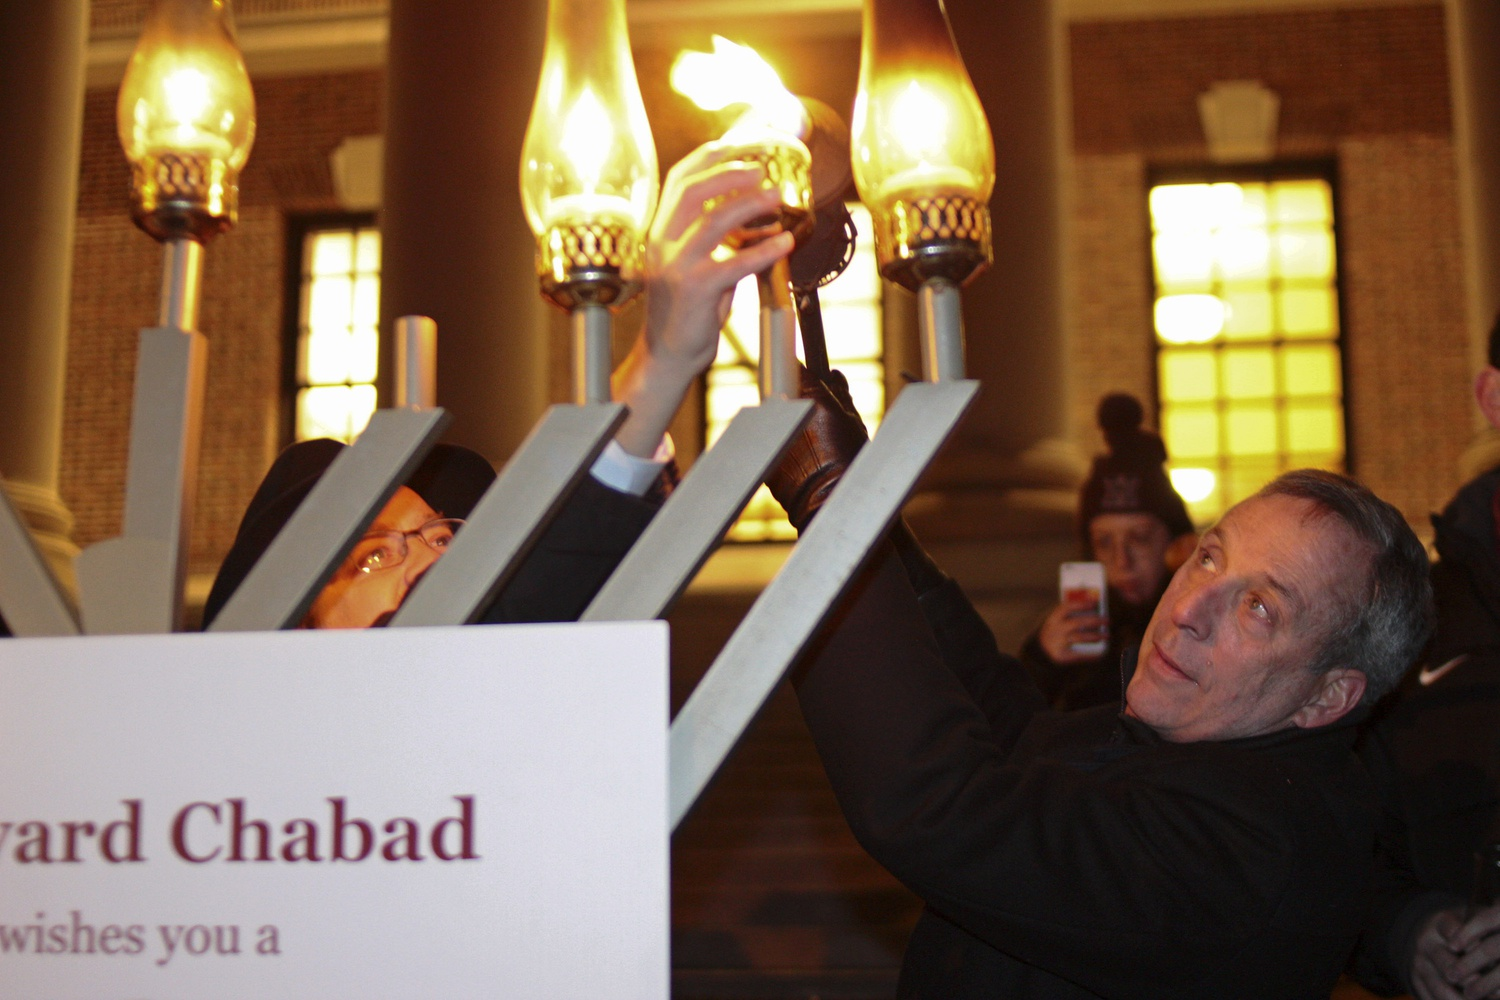 President Bacow helps light a large menorah in front of Widener Library during Harvard Chabad's annual Grand Menorah Lighting Tuesday evening.